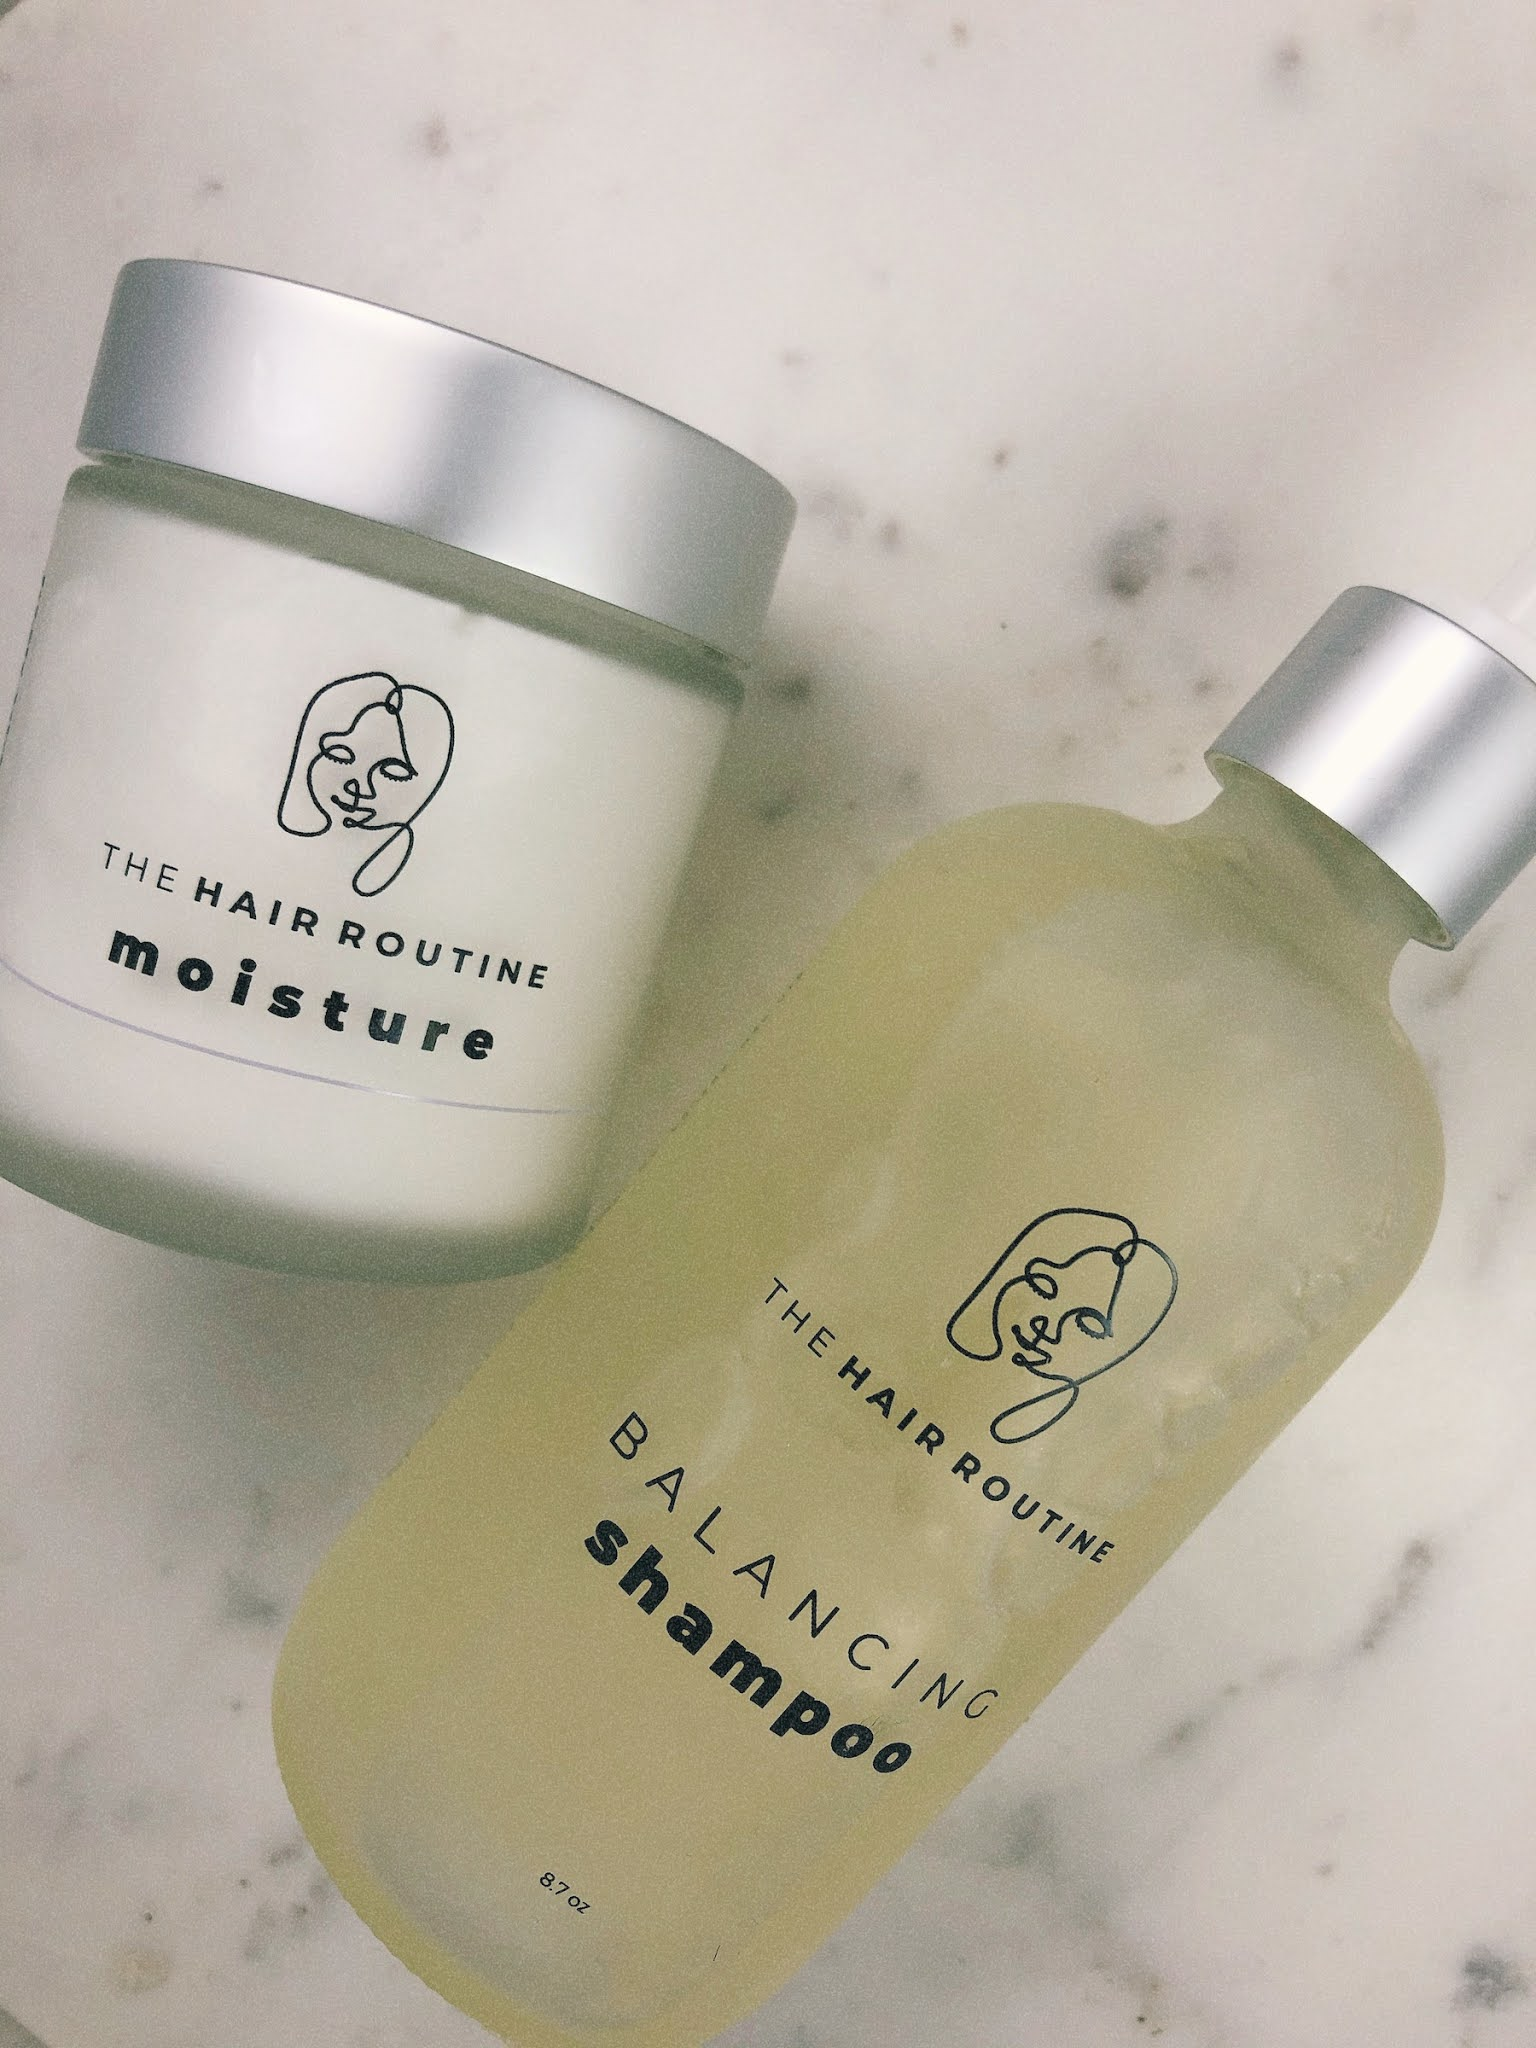 The Hair Routine Balancing Shampoo and Conditioner: A quick review